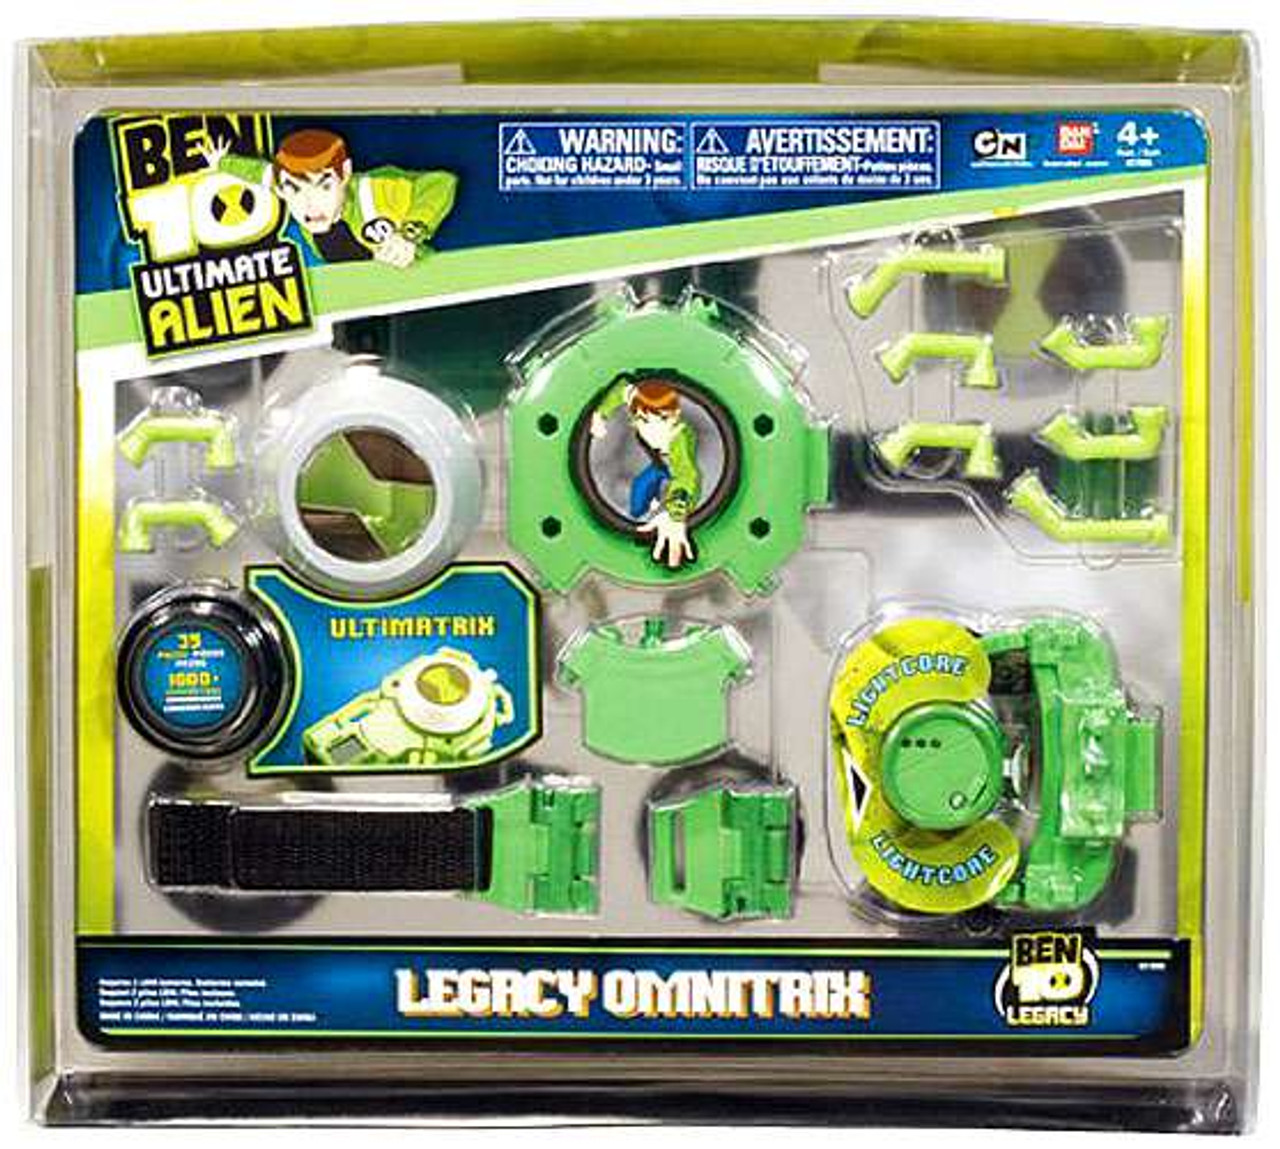 Ben 10 Ultimate Alien Legacy Omnitrix Roleplay Toy